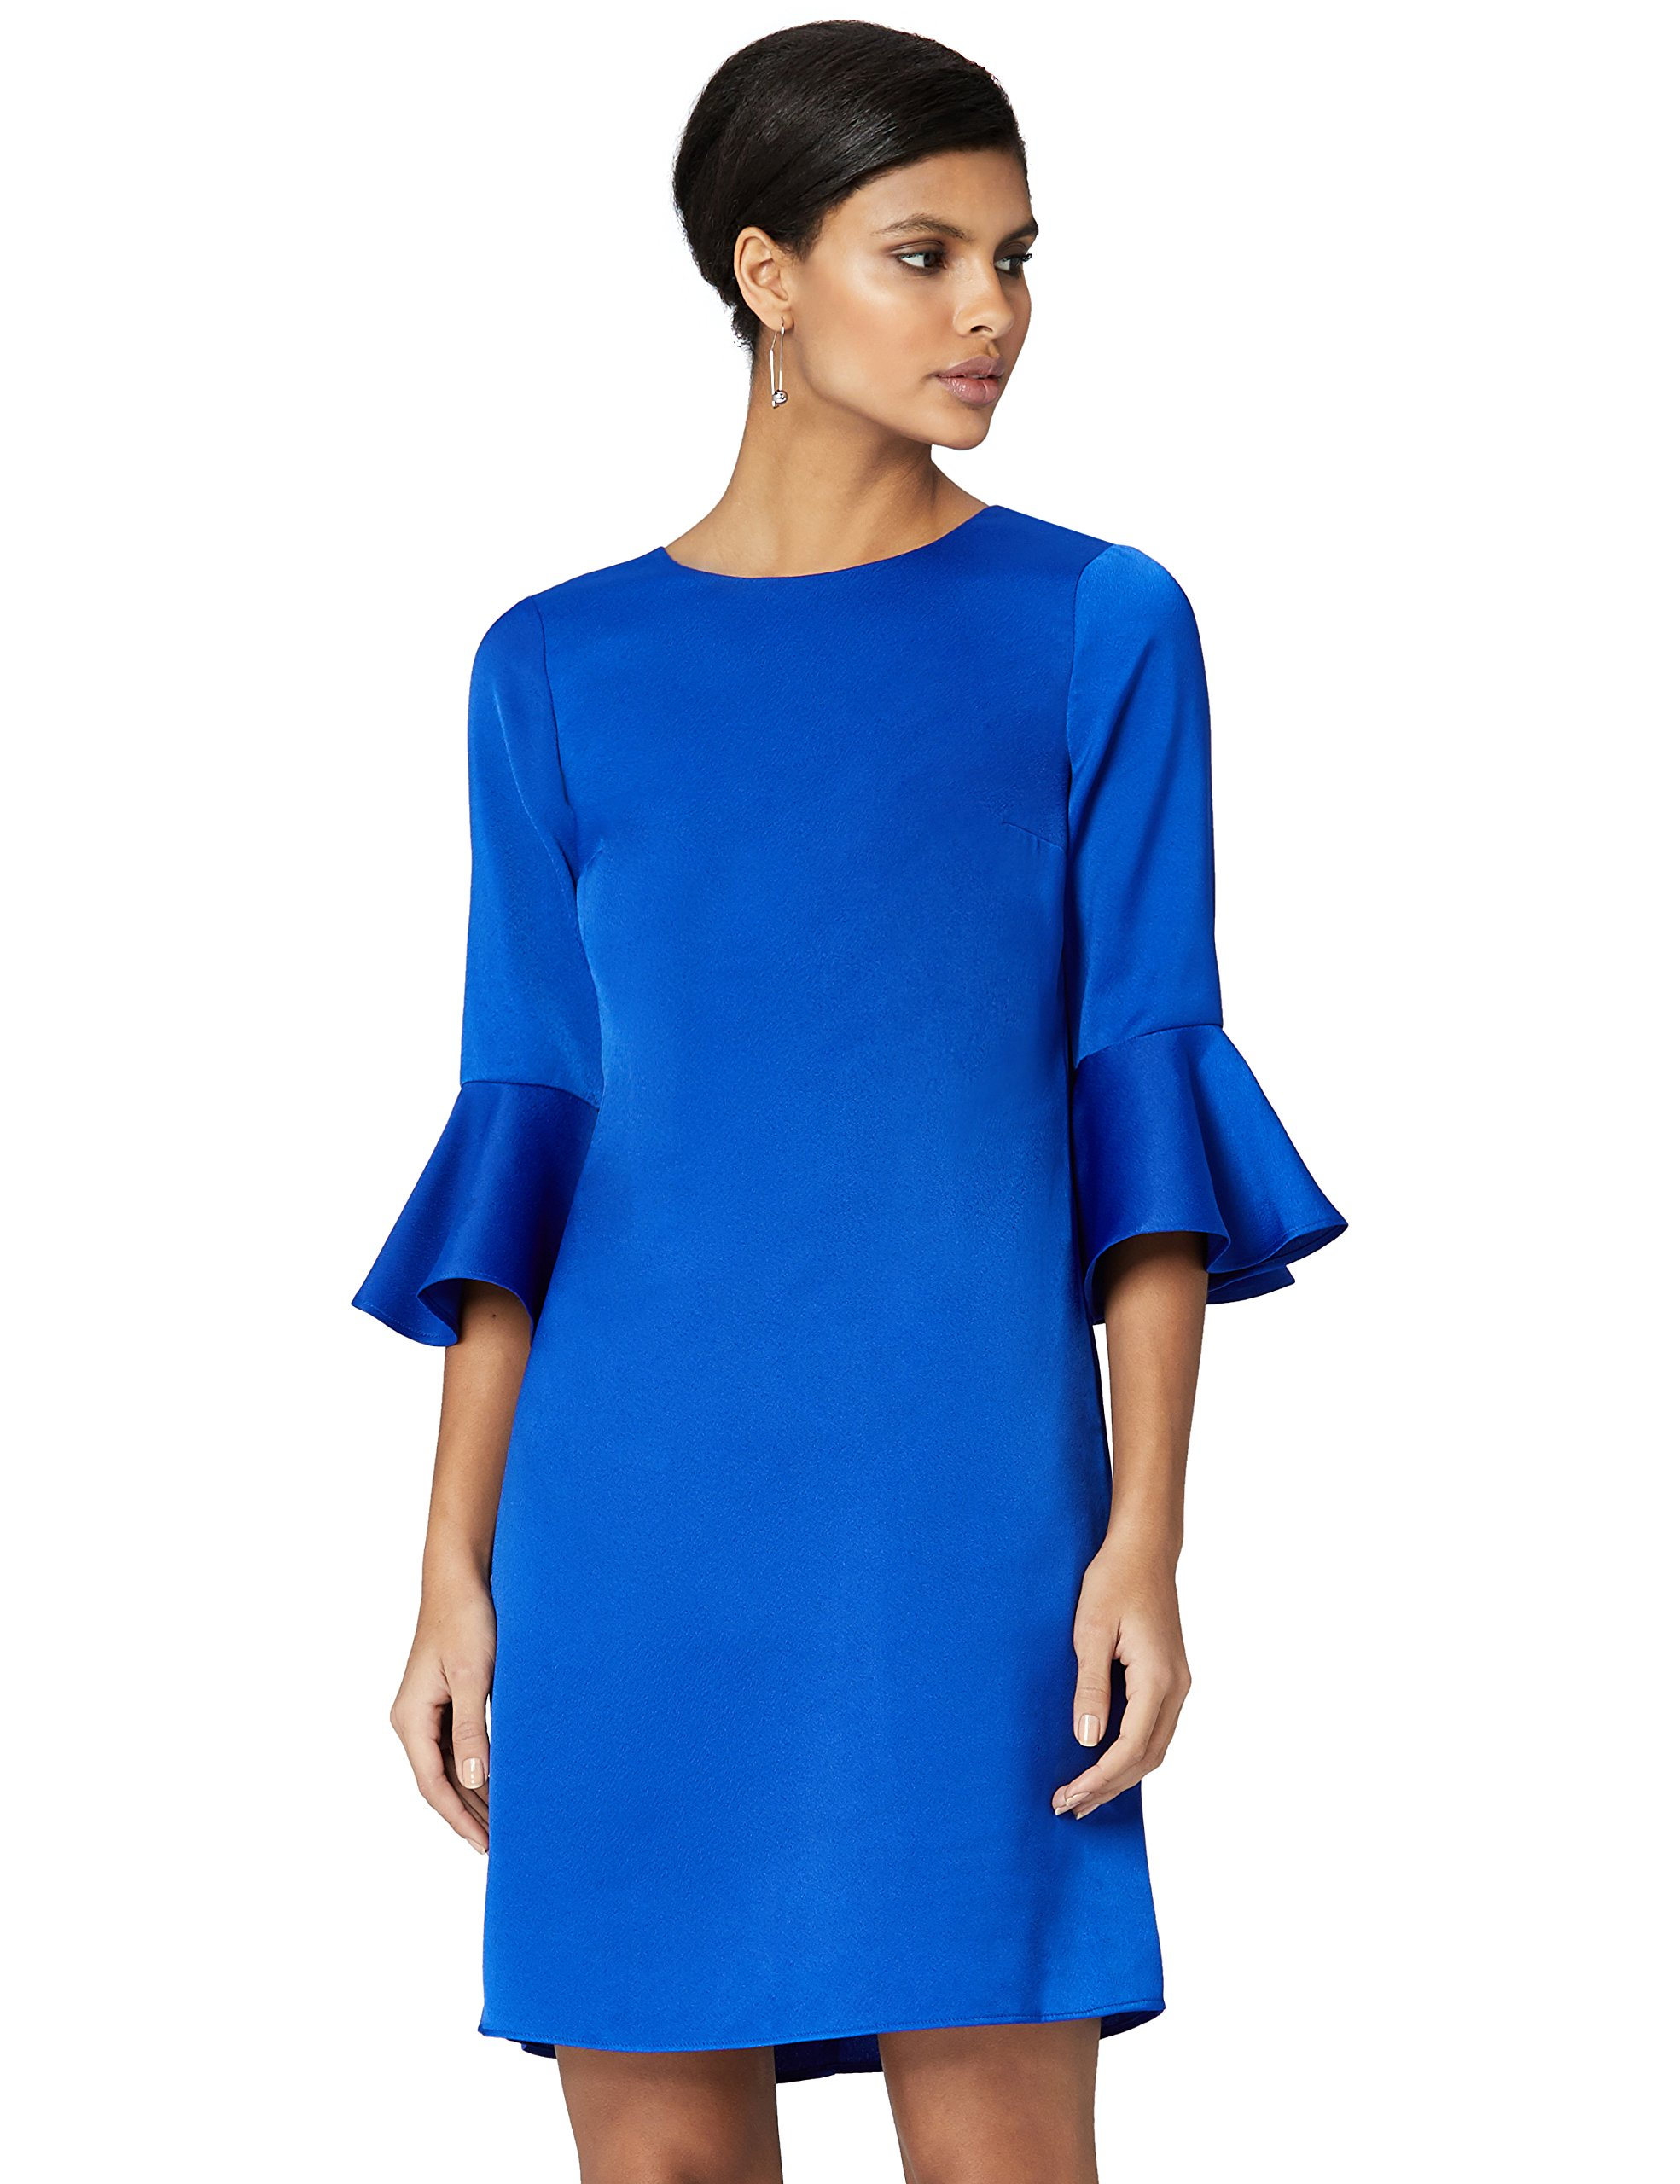 Fable SoiréeBleucobalt44taille Azd7961 large Truthamp; Robes De FabricantX nvw8ymN0O